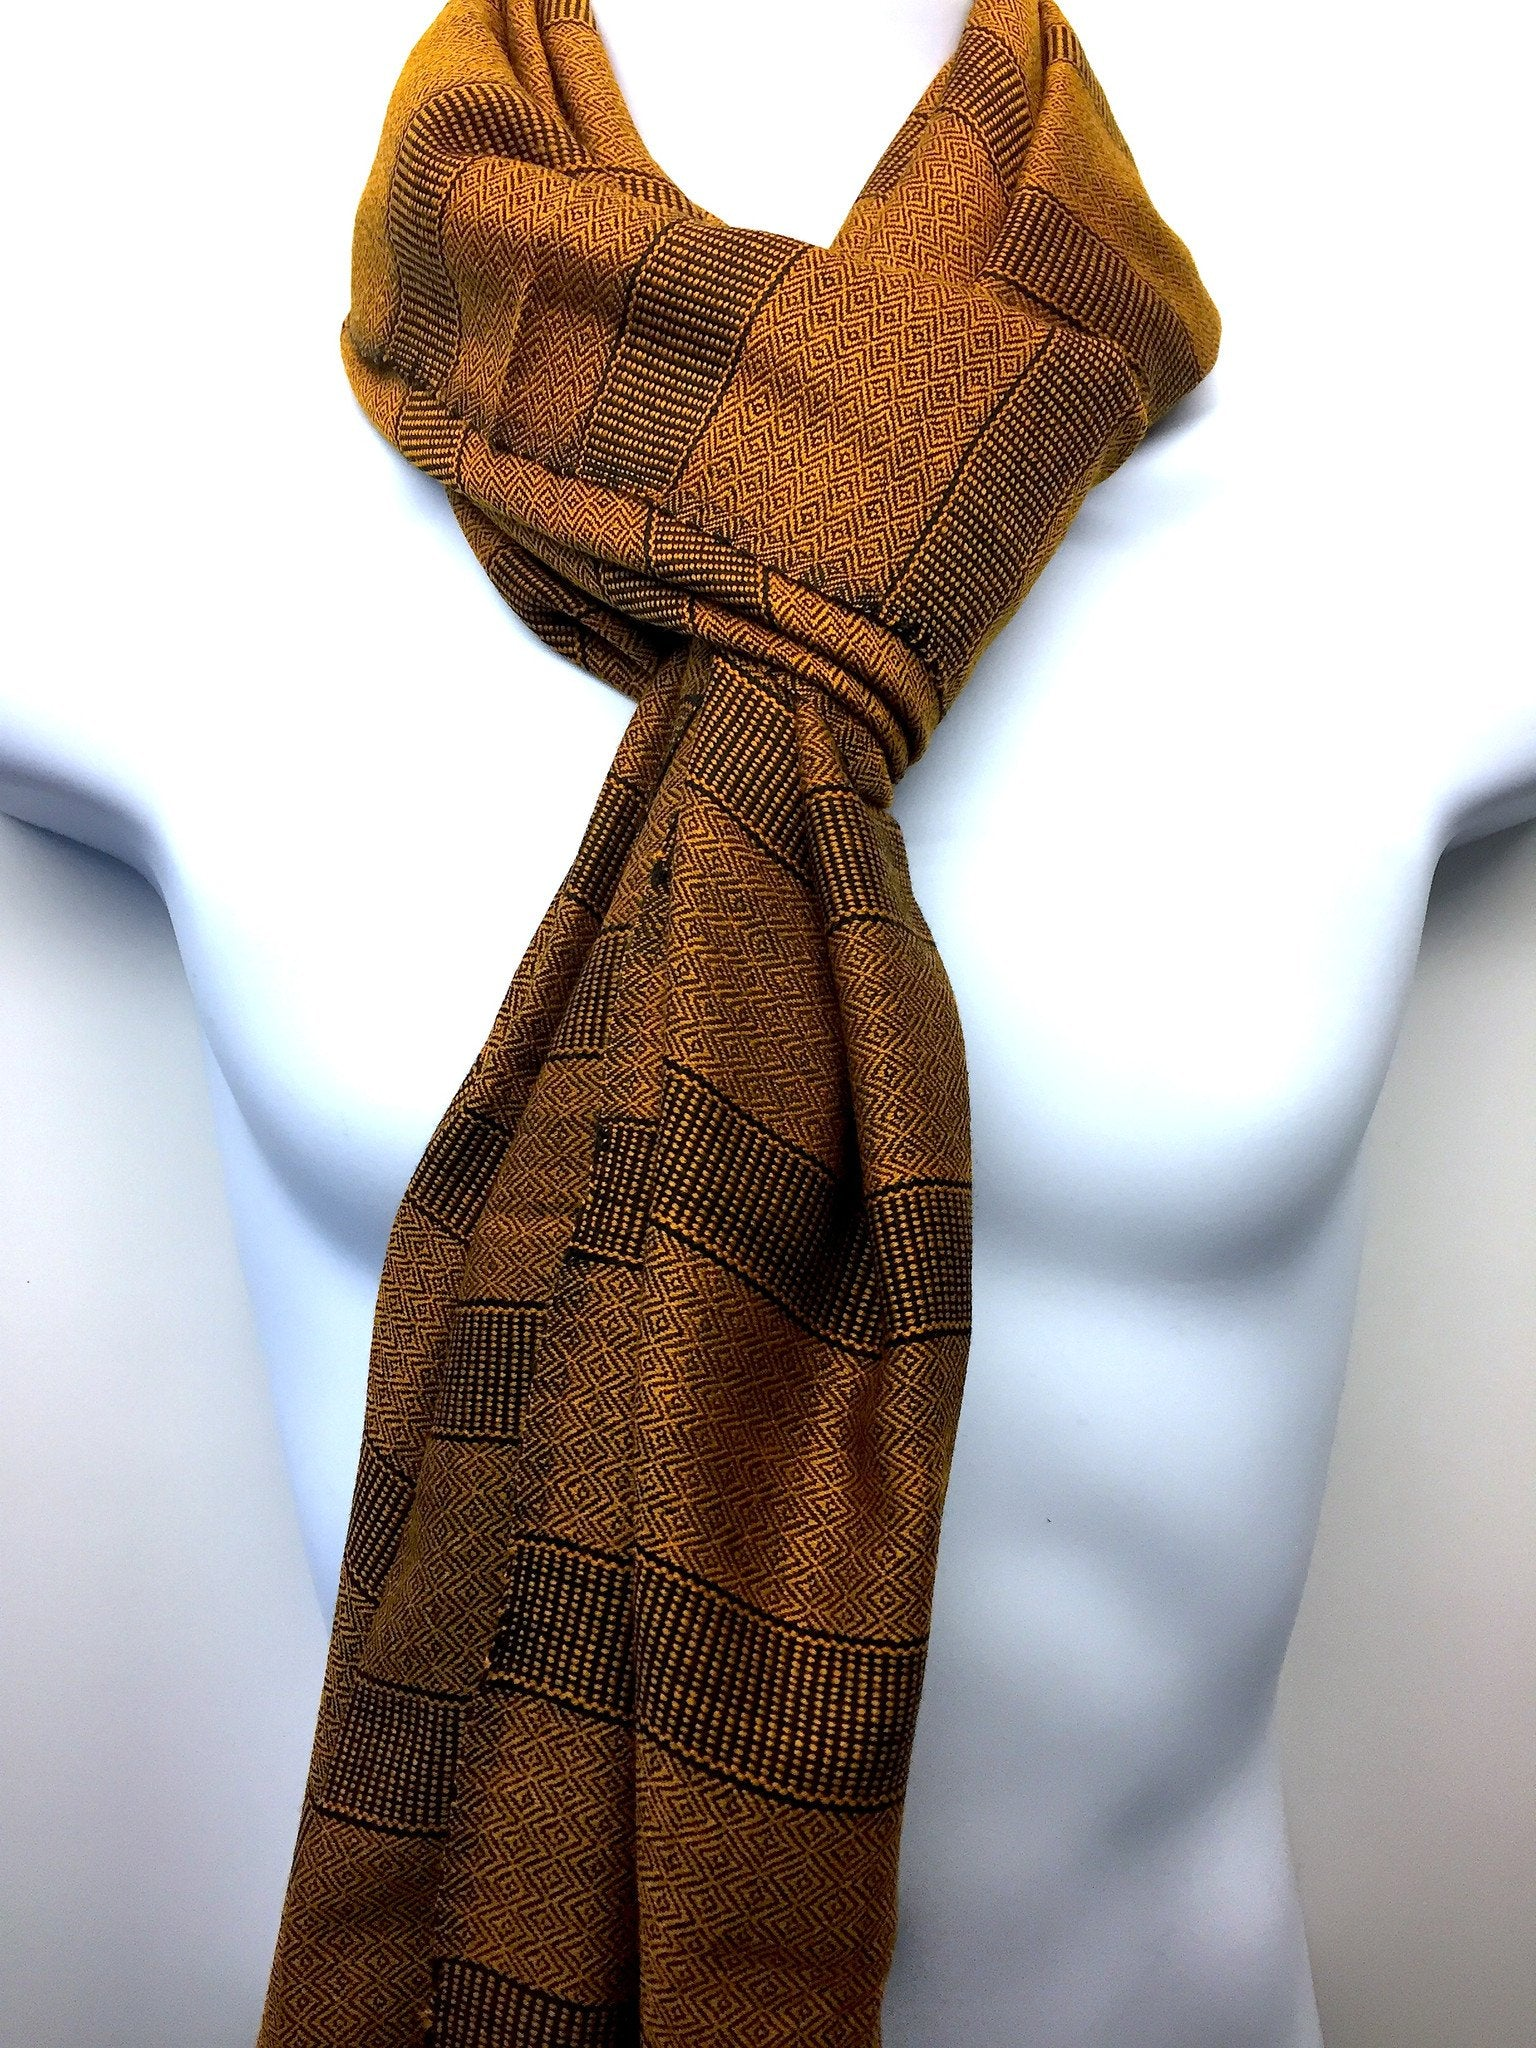 Pure 100% Wool, Gold Tinge Stripe, Hand-loom made, Muffler